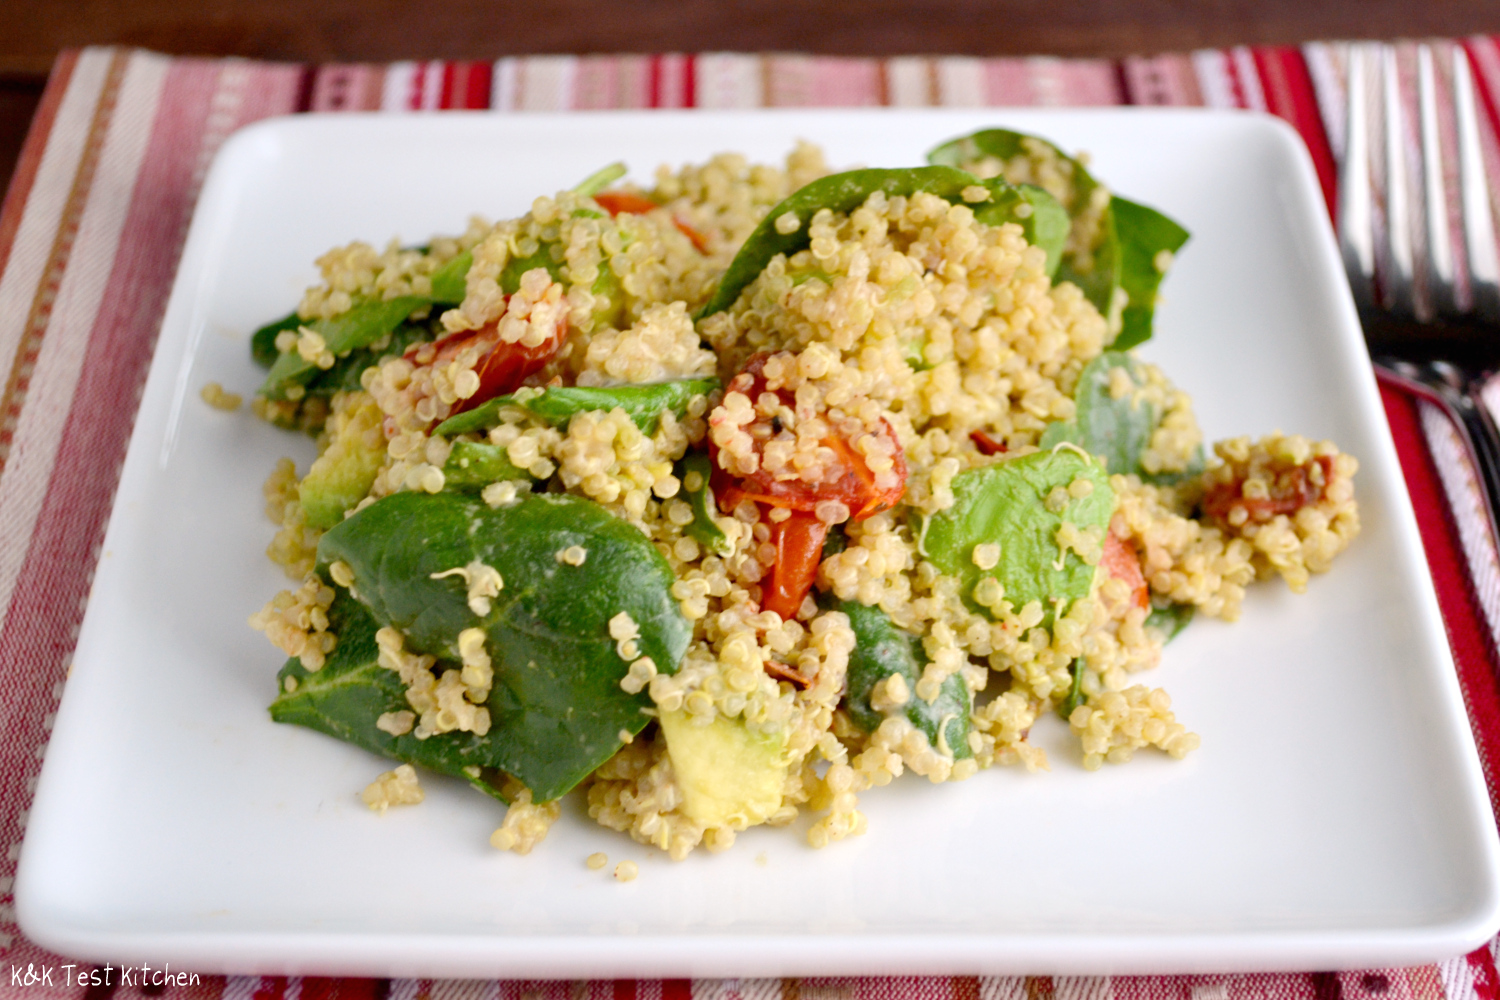 K&K Test Kitchen: Quinoa Salad with Roasted Tomatoes and ...Quinoa Salad With Avocado